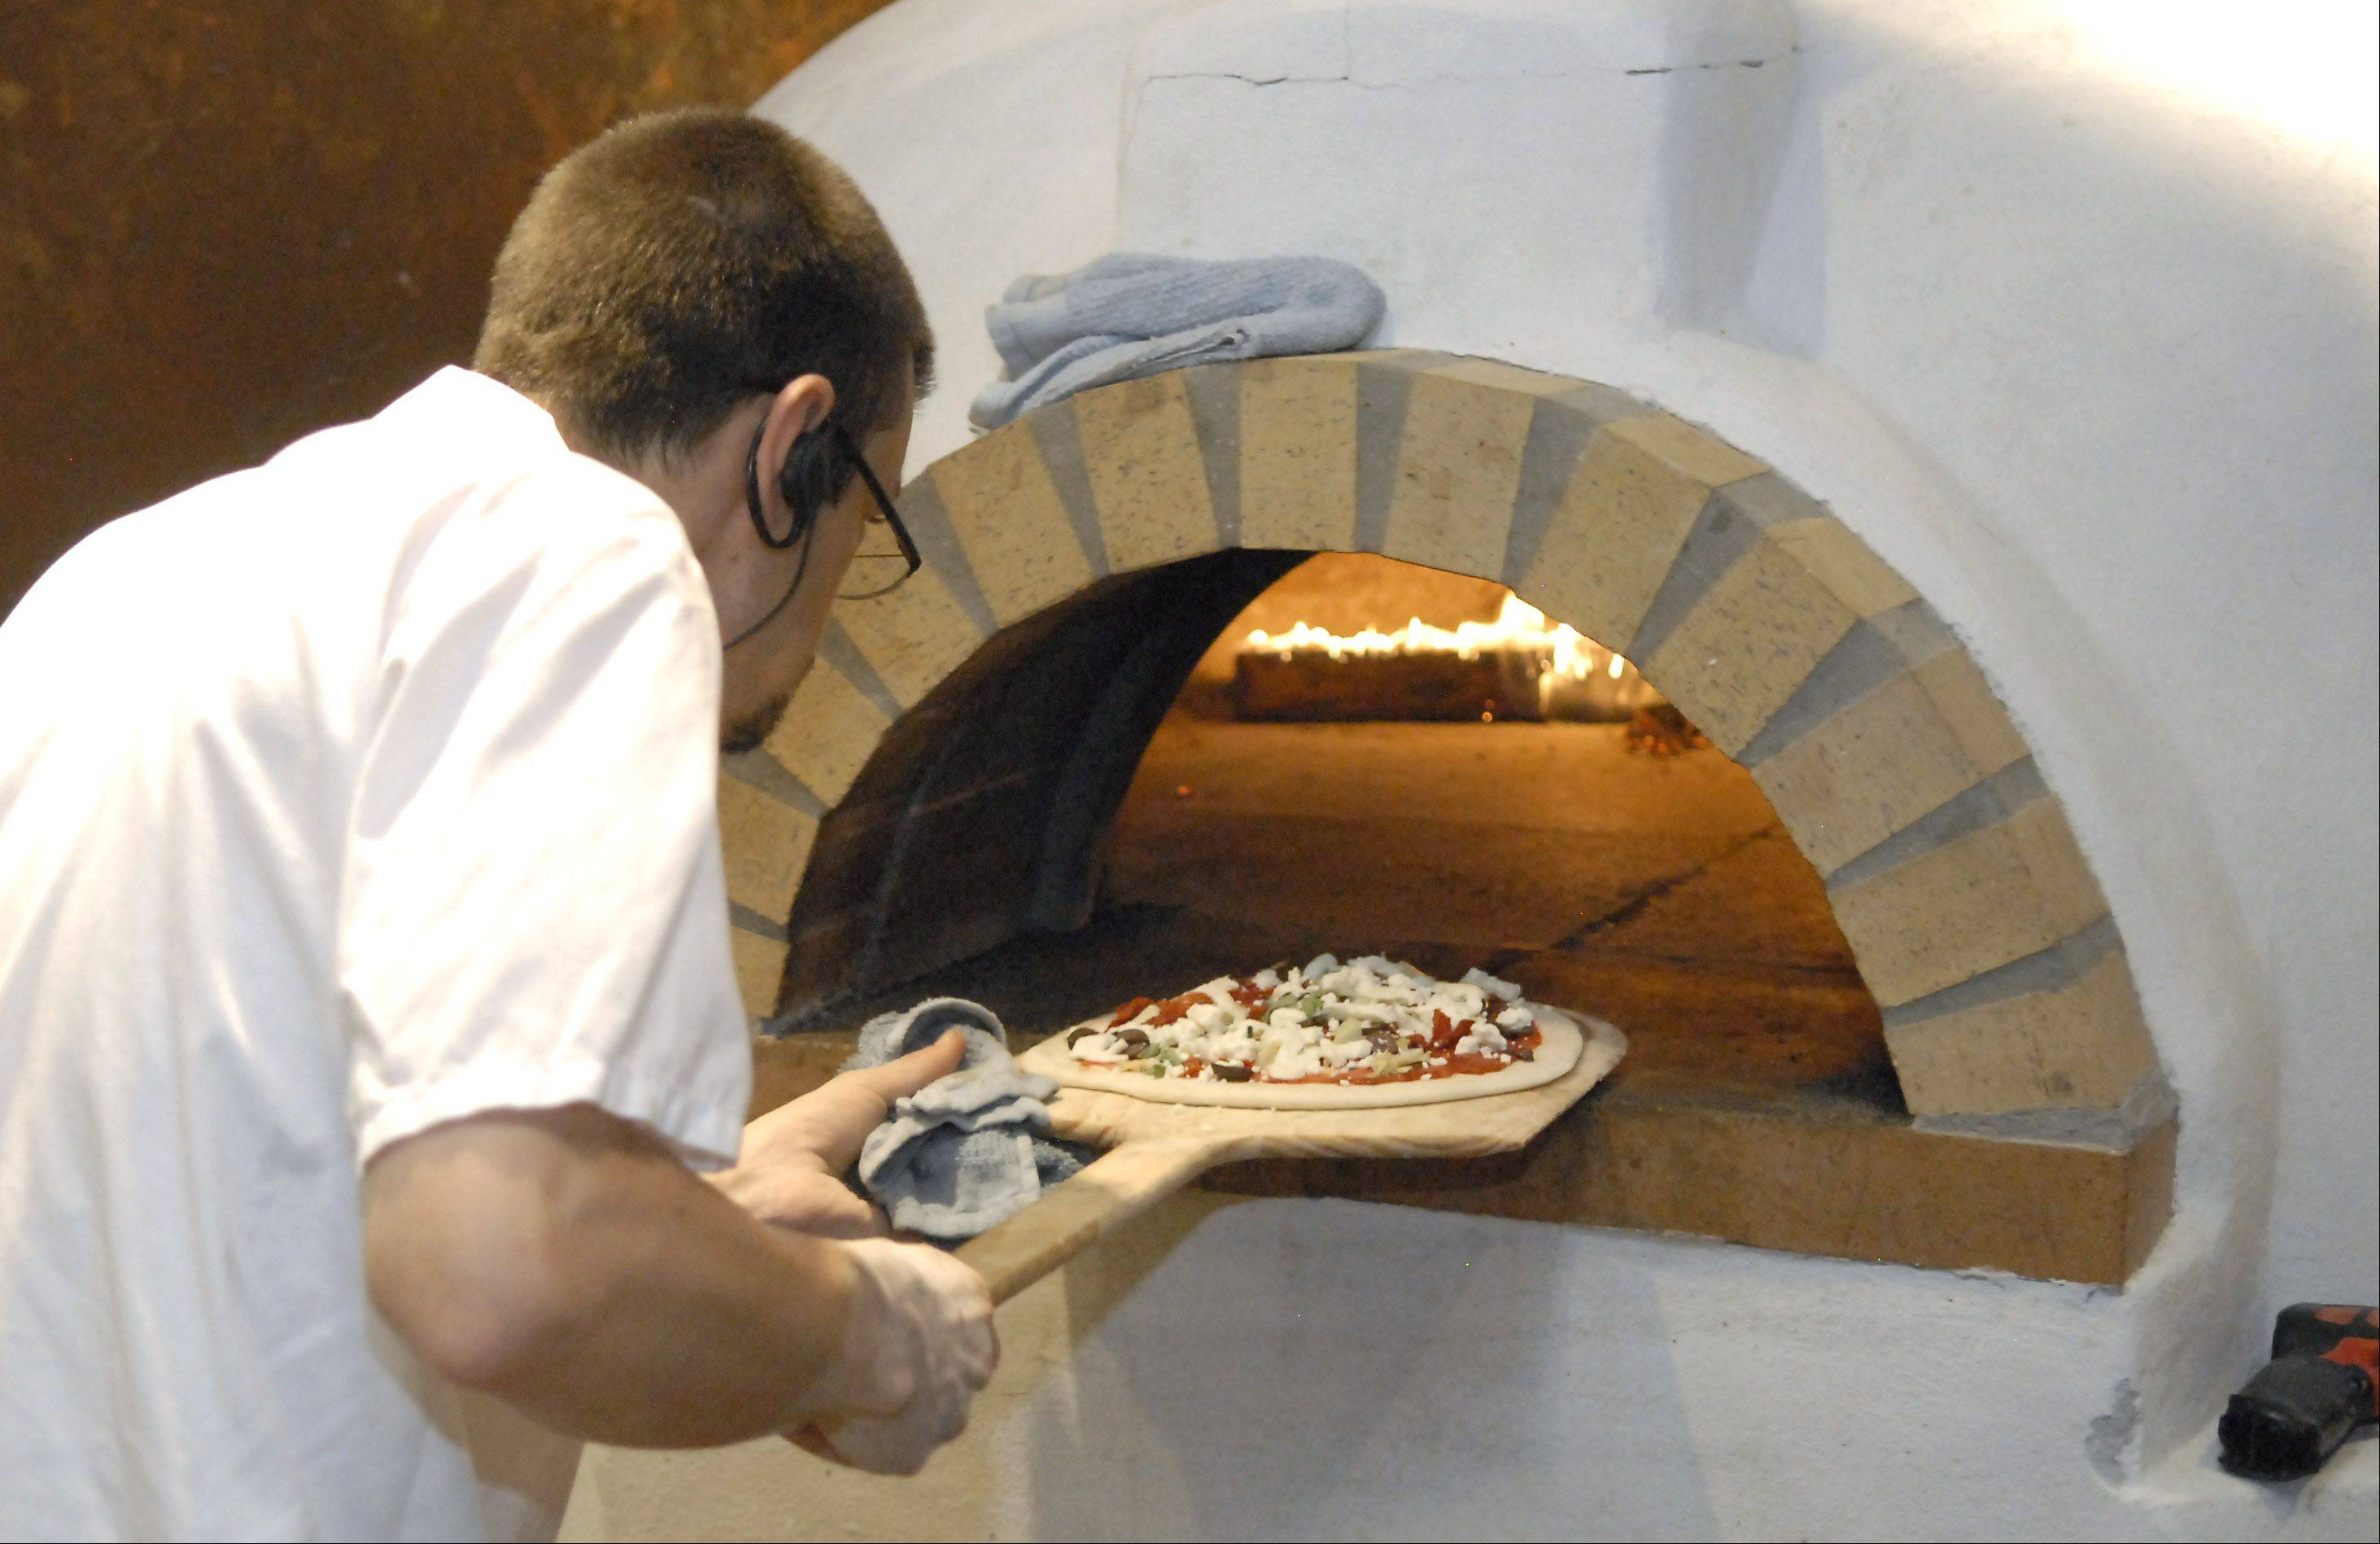 Pizzas are made in a wood burning oven at the Village Vitner in Algonquin.